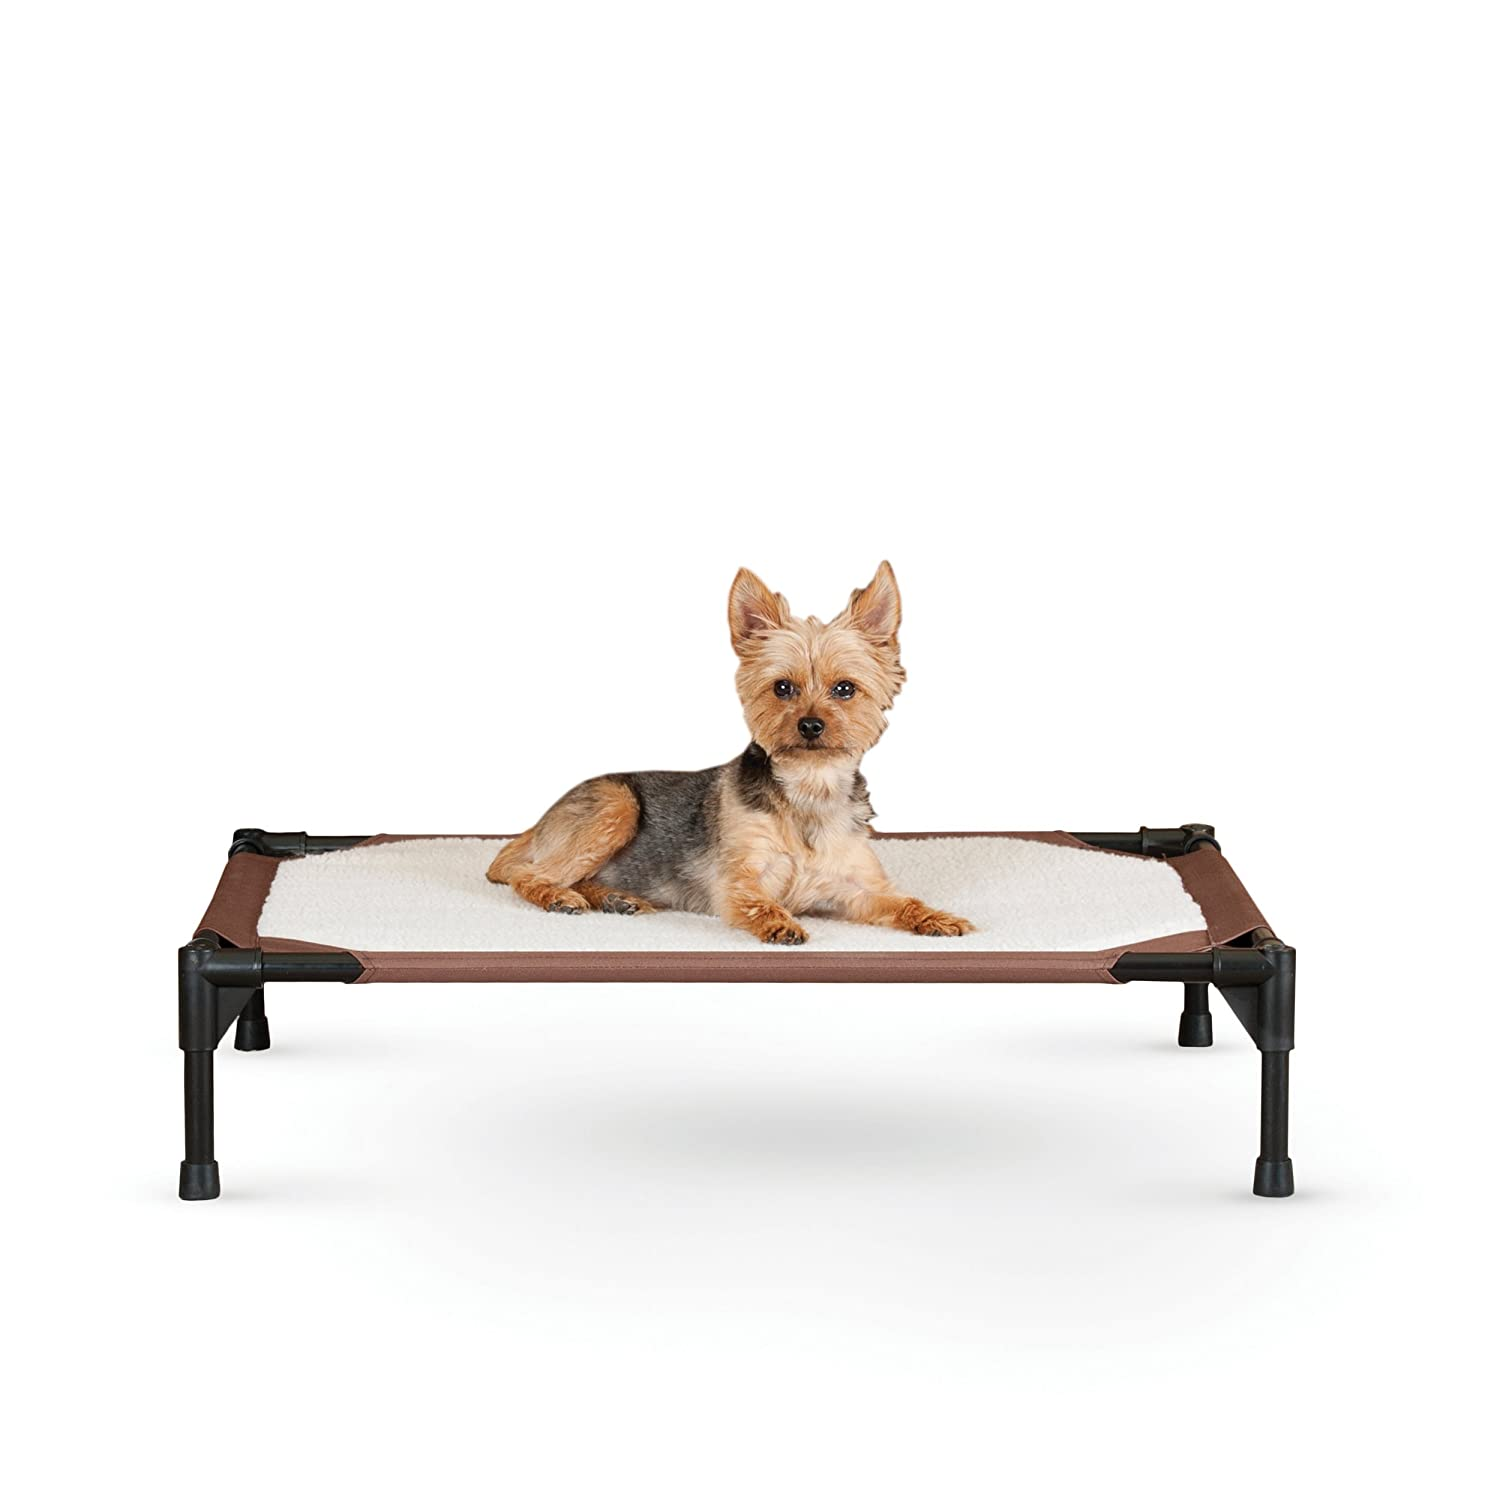 K H Pet Products Self-Warming Pet Cot Elevated Pet Bed – Chocolate Fleece